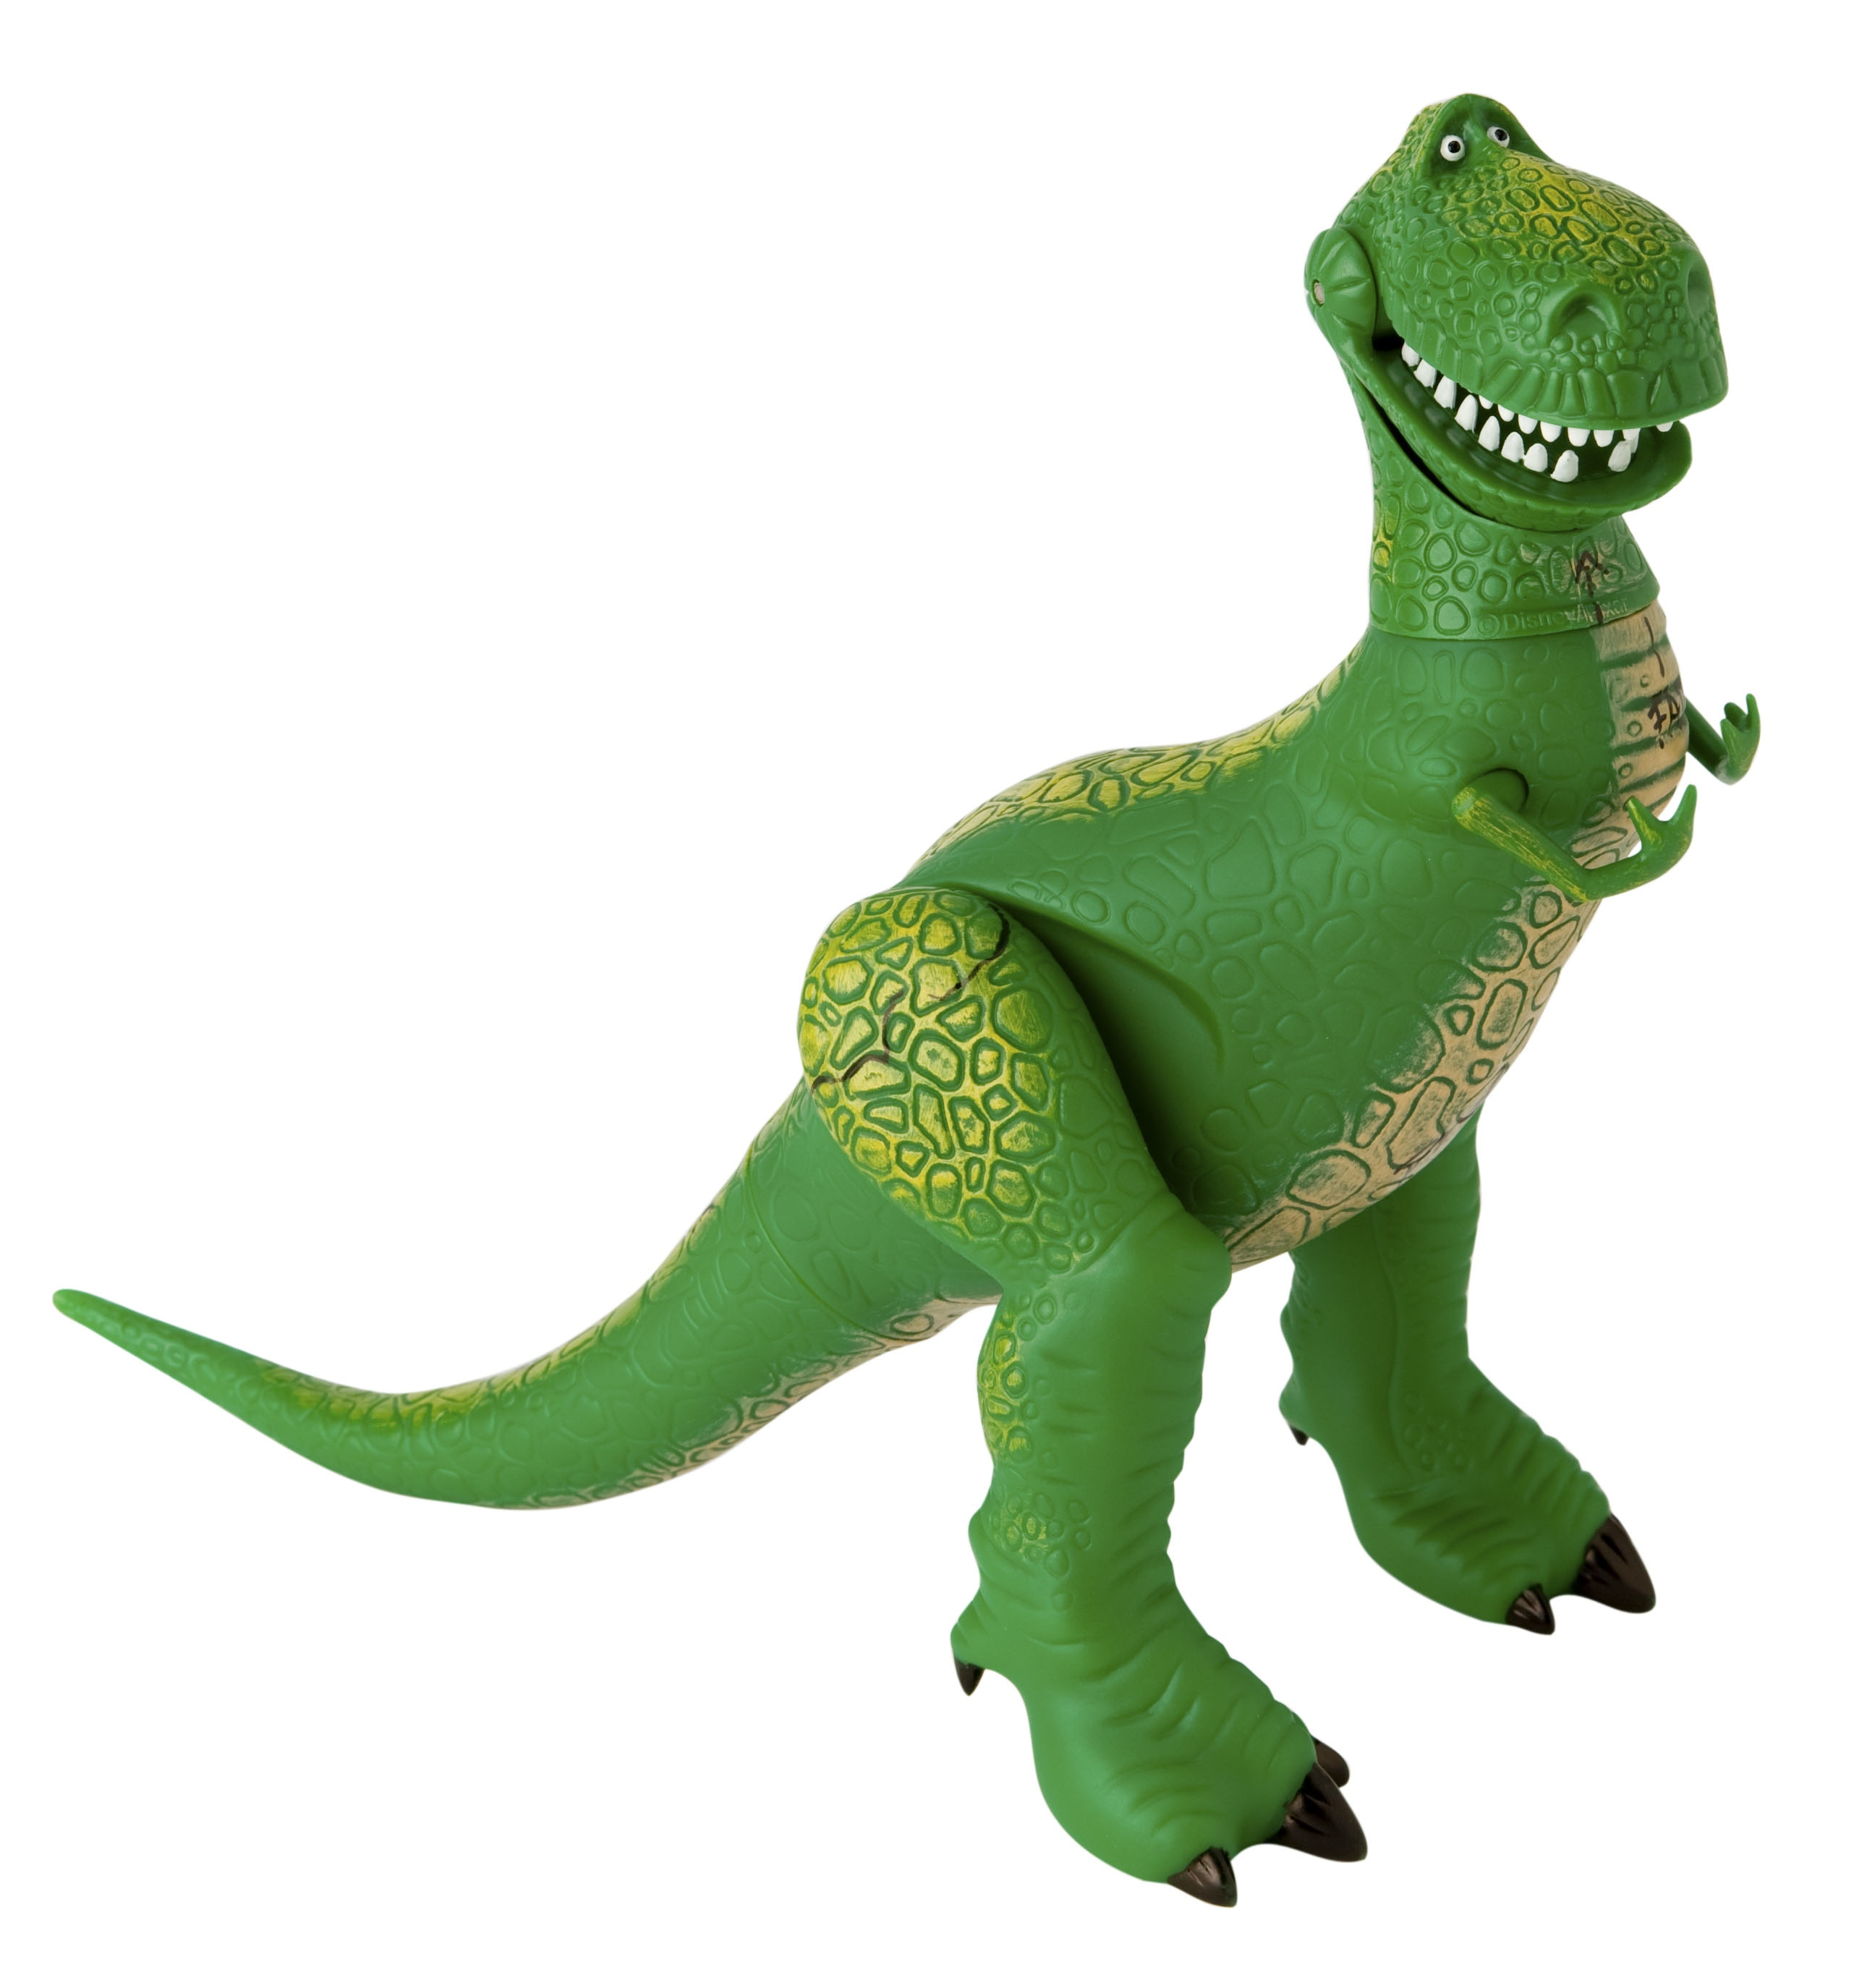 Toy Story Dinosaur : Toystorycollectionrex